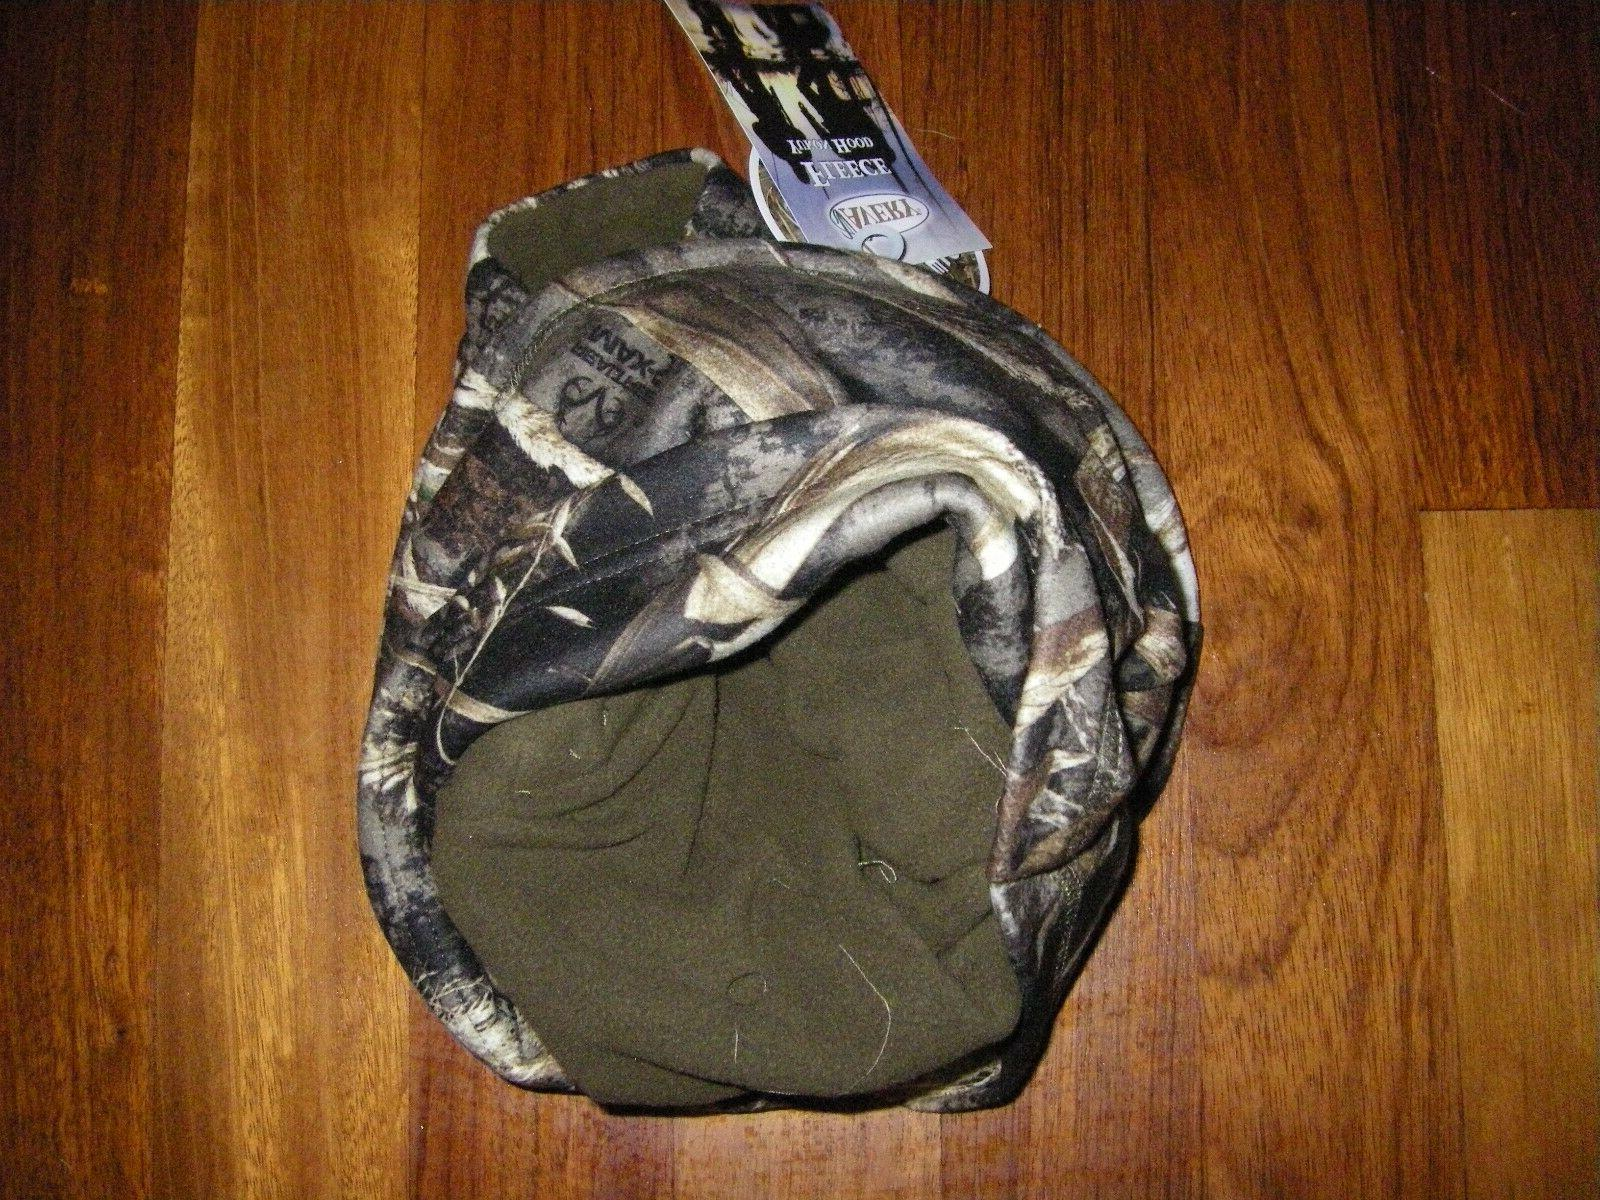 NEW Greenhead Gear Realtree Hood Polar Fleece Wind